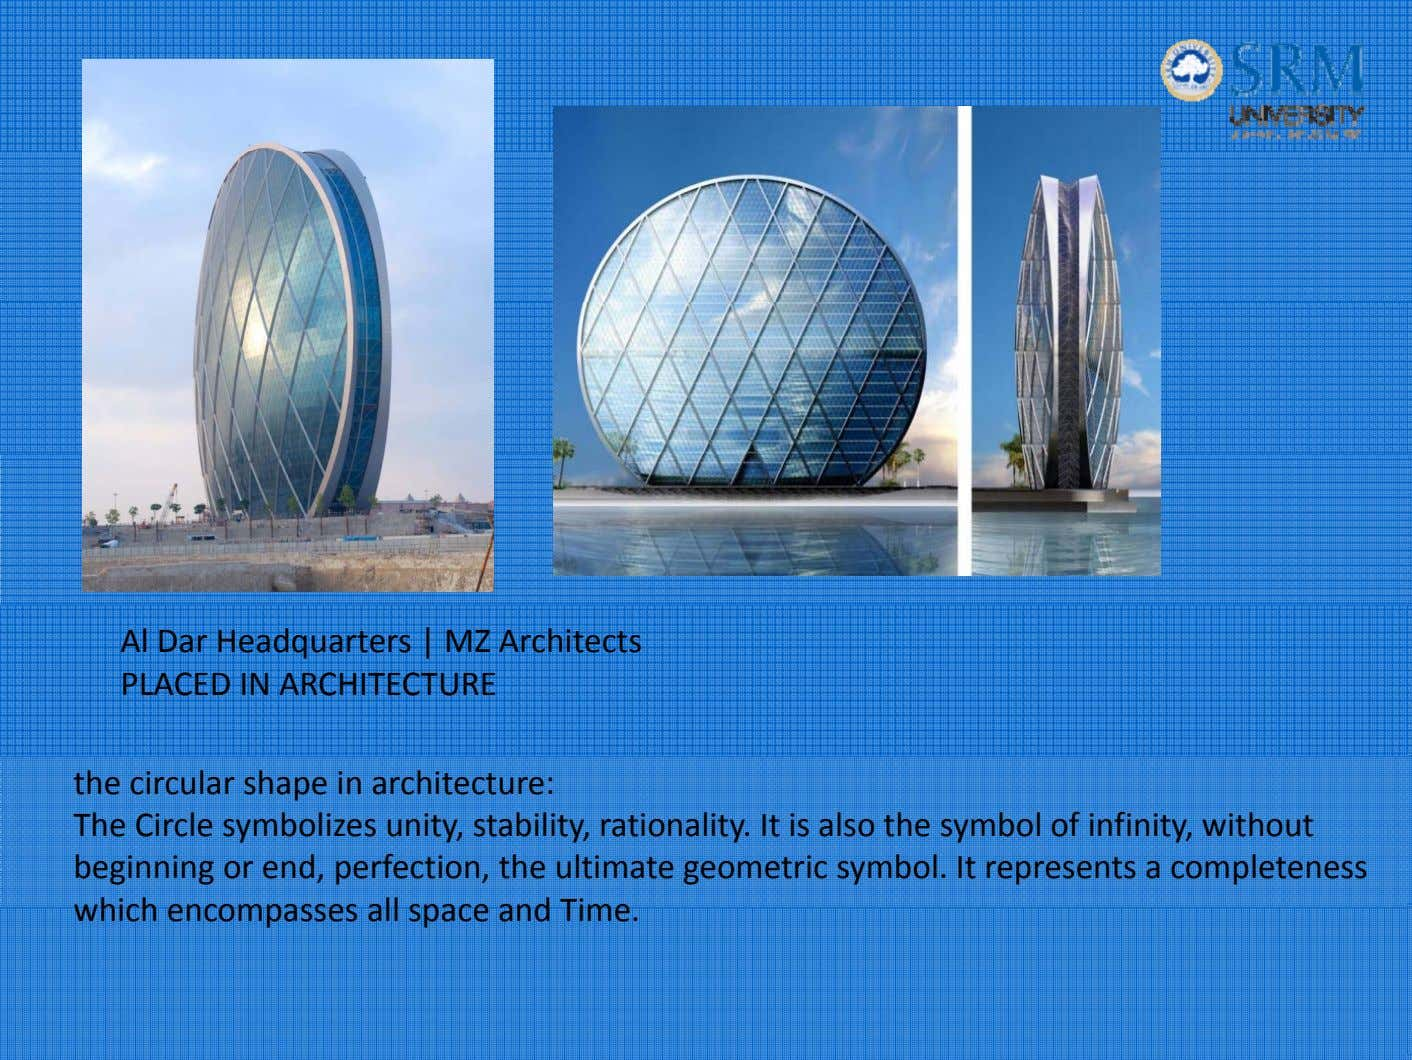 Al Dar Headquarters | MZ Architects PLACED IN ARCHITECTURE the circular shape in architecture: The